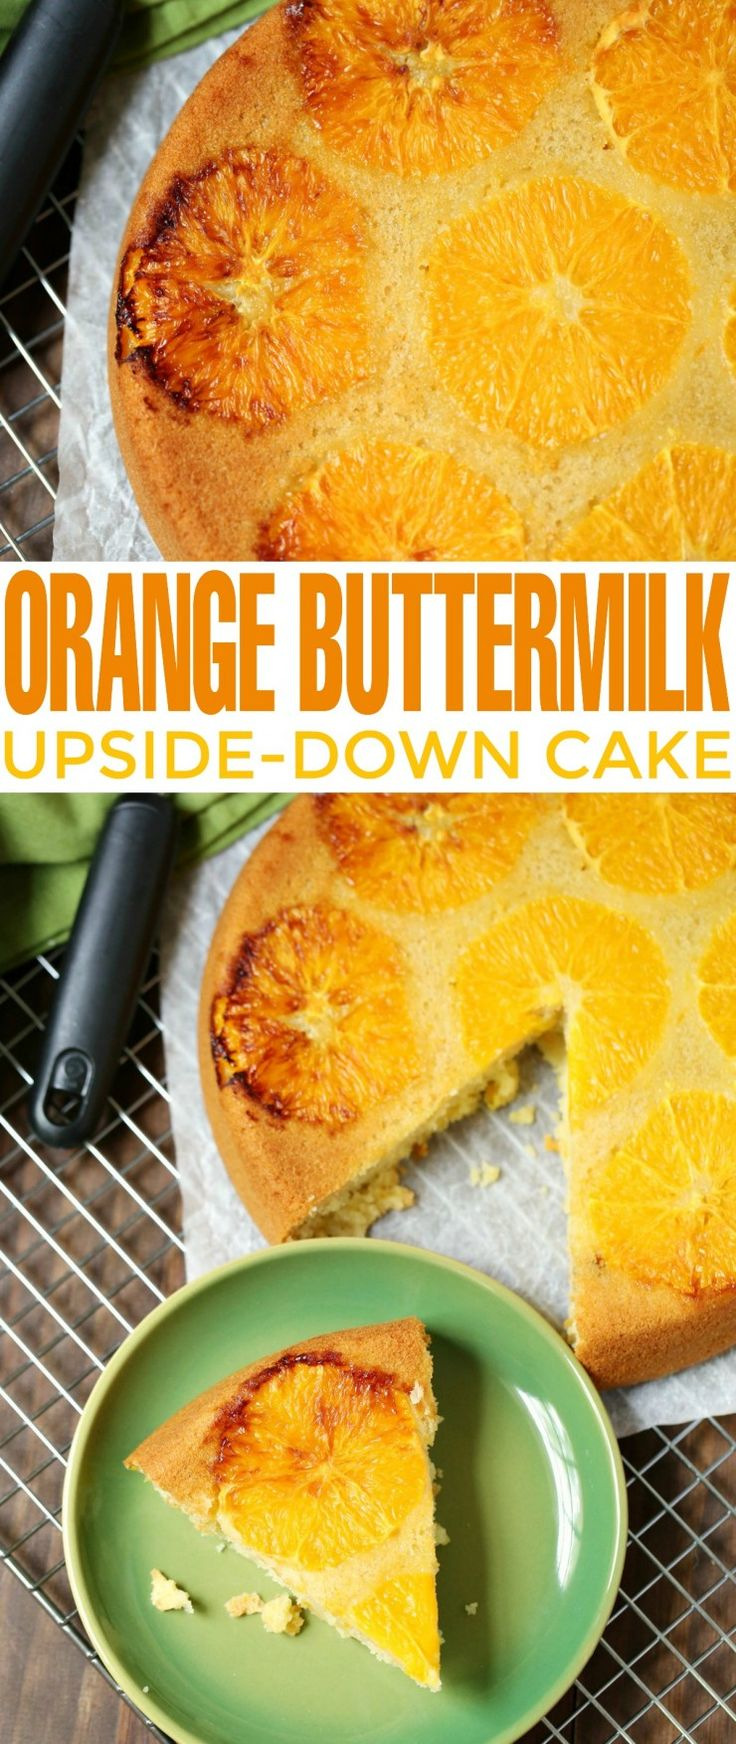 Indulge a little with this citrus alternative to a pineapple upside-down cake. I think he orange slices are remarkably pretty, especially with the bits of caramelisation that happen while this Orange Buttermilk Upside-Down Cake bakes.